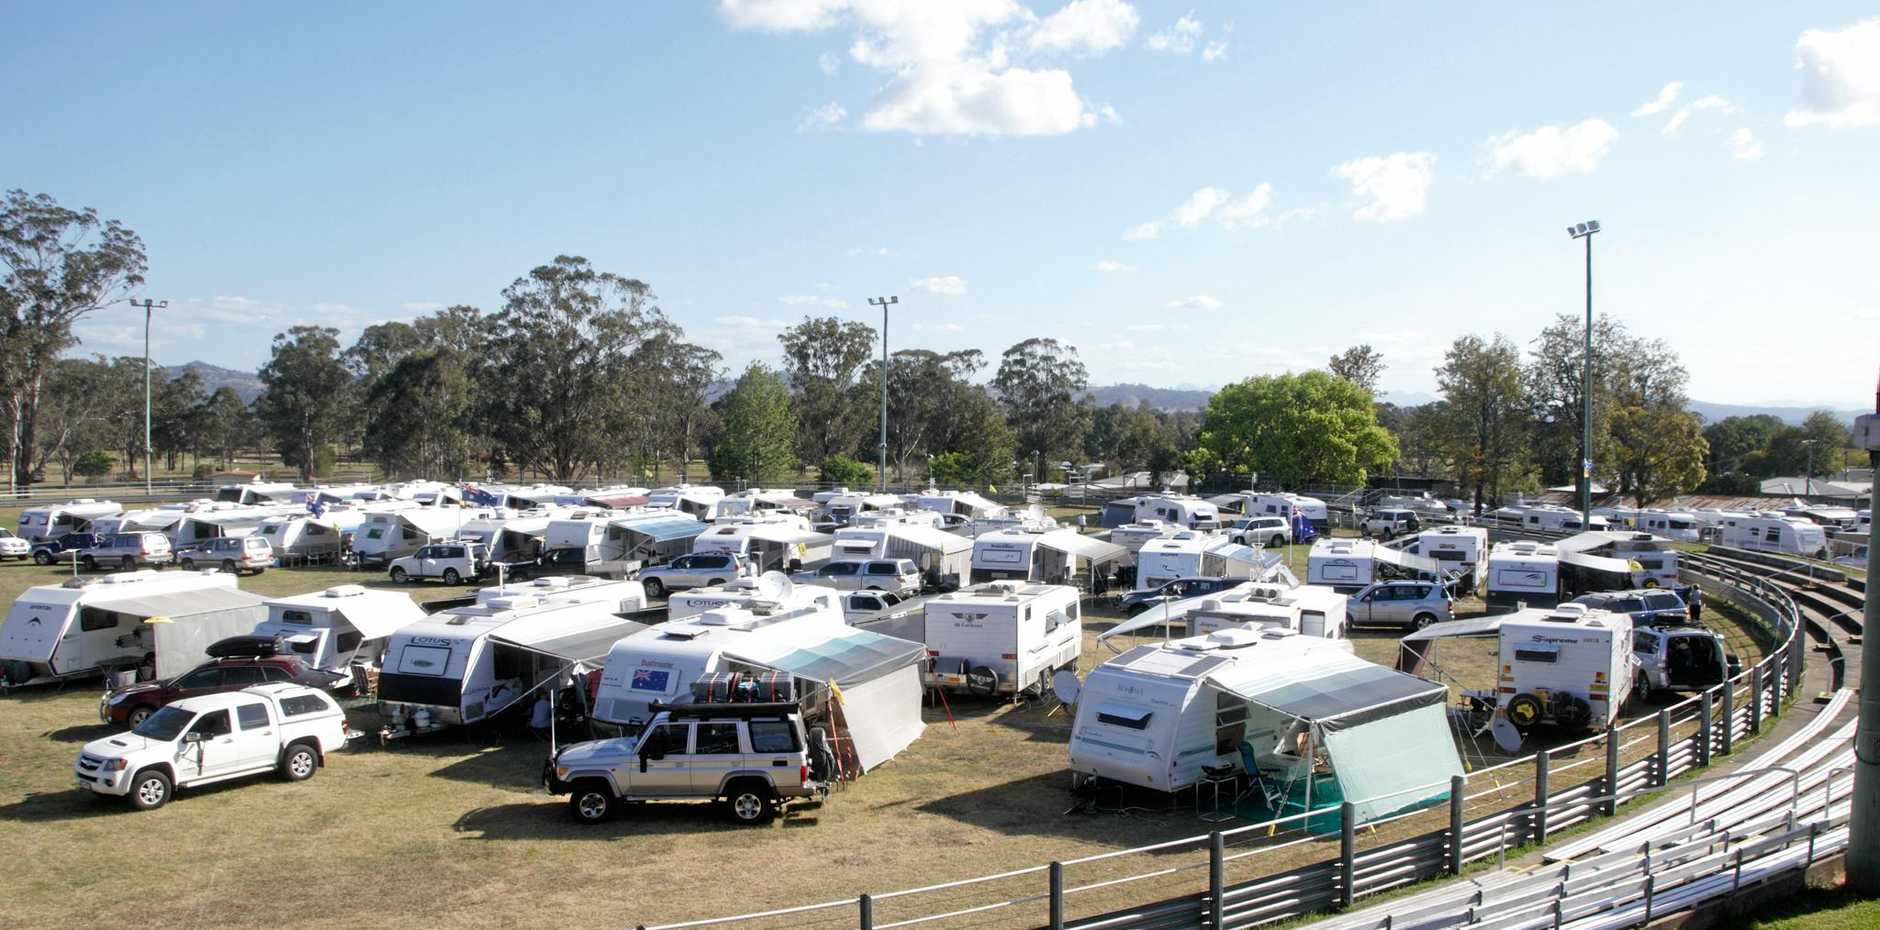 COMING TO TOWN: Over 50 members of the Australian Caravan Club (ACC) will be attending a joint three branch muster at the Sarina Showgrounds next month.